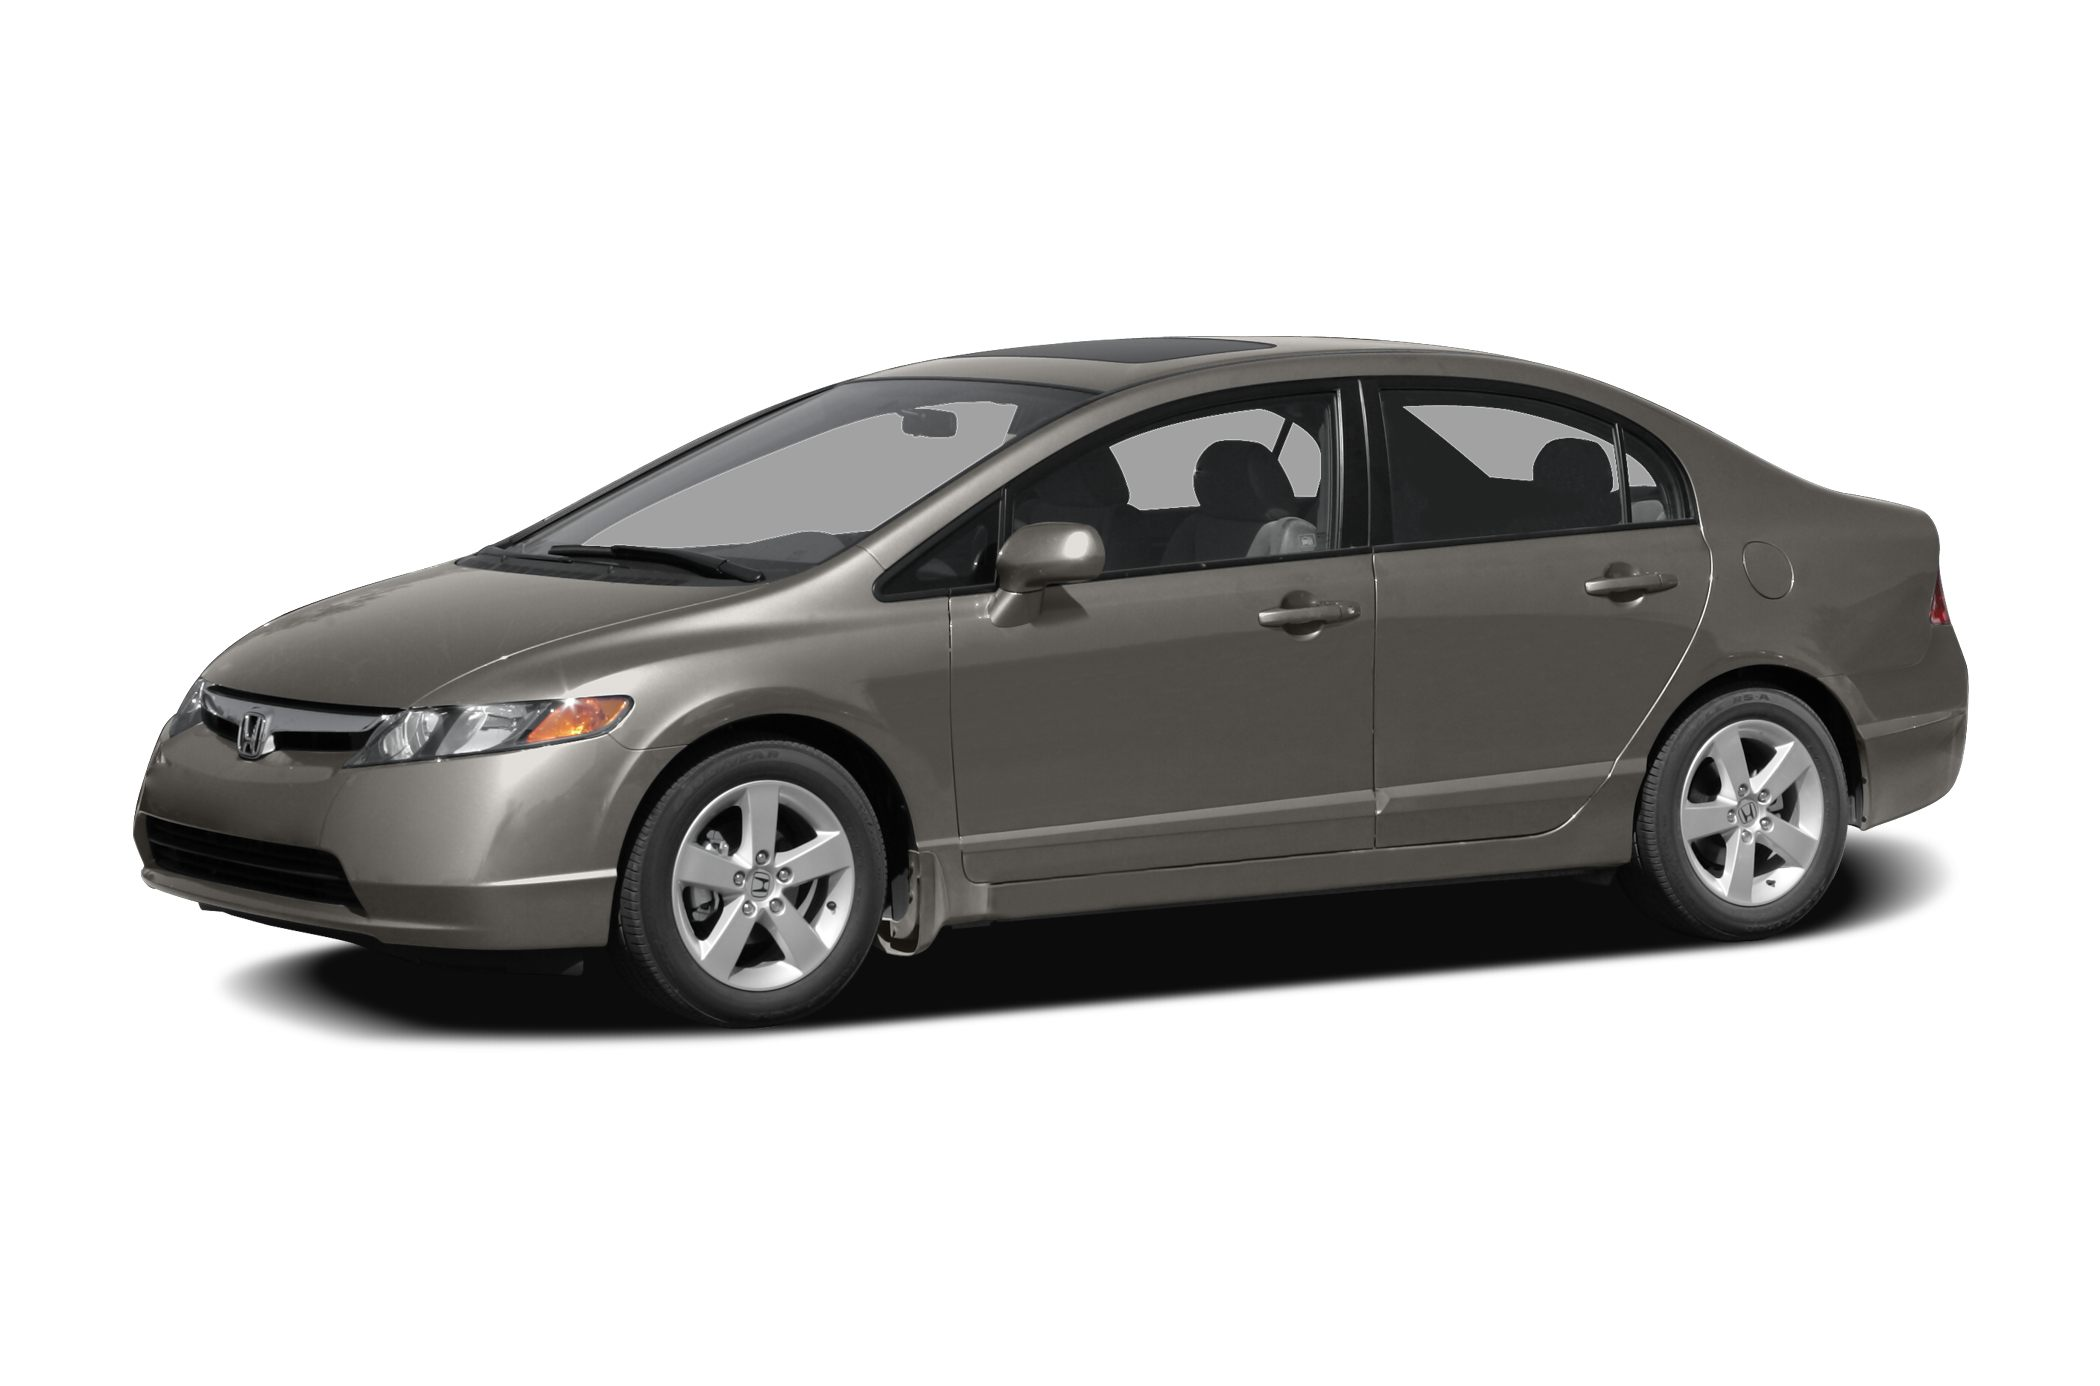 2008 Honda Civic LX Coupe for sale in Chicago for $8,999 with 66,270 miles.